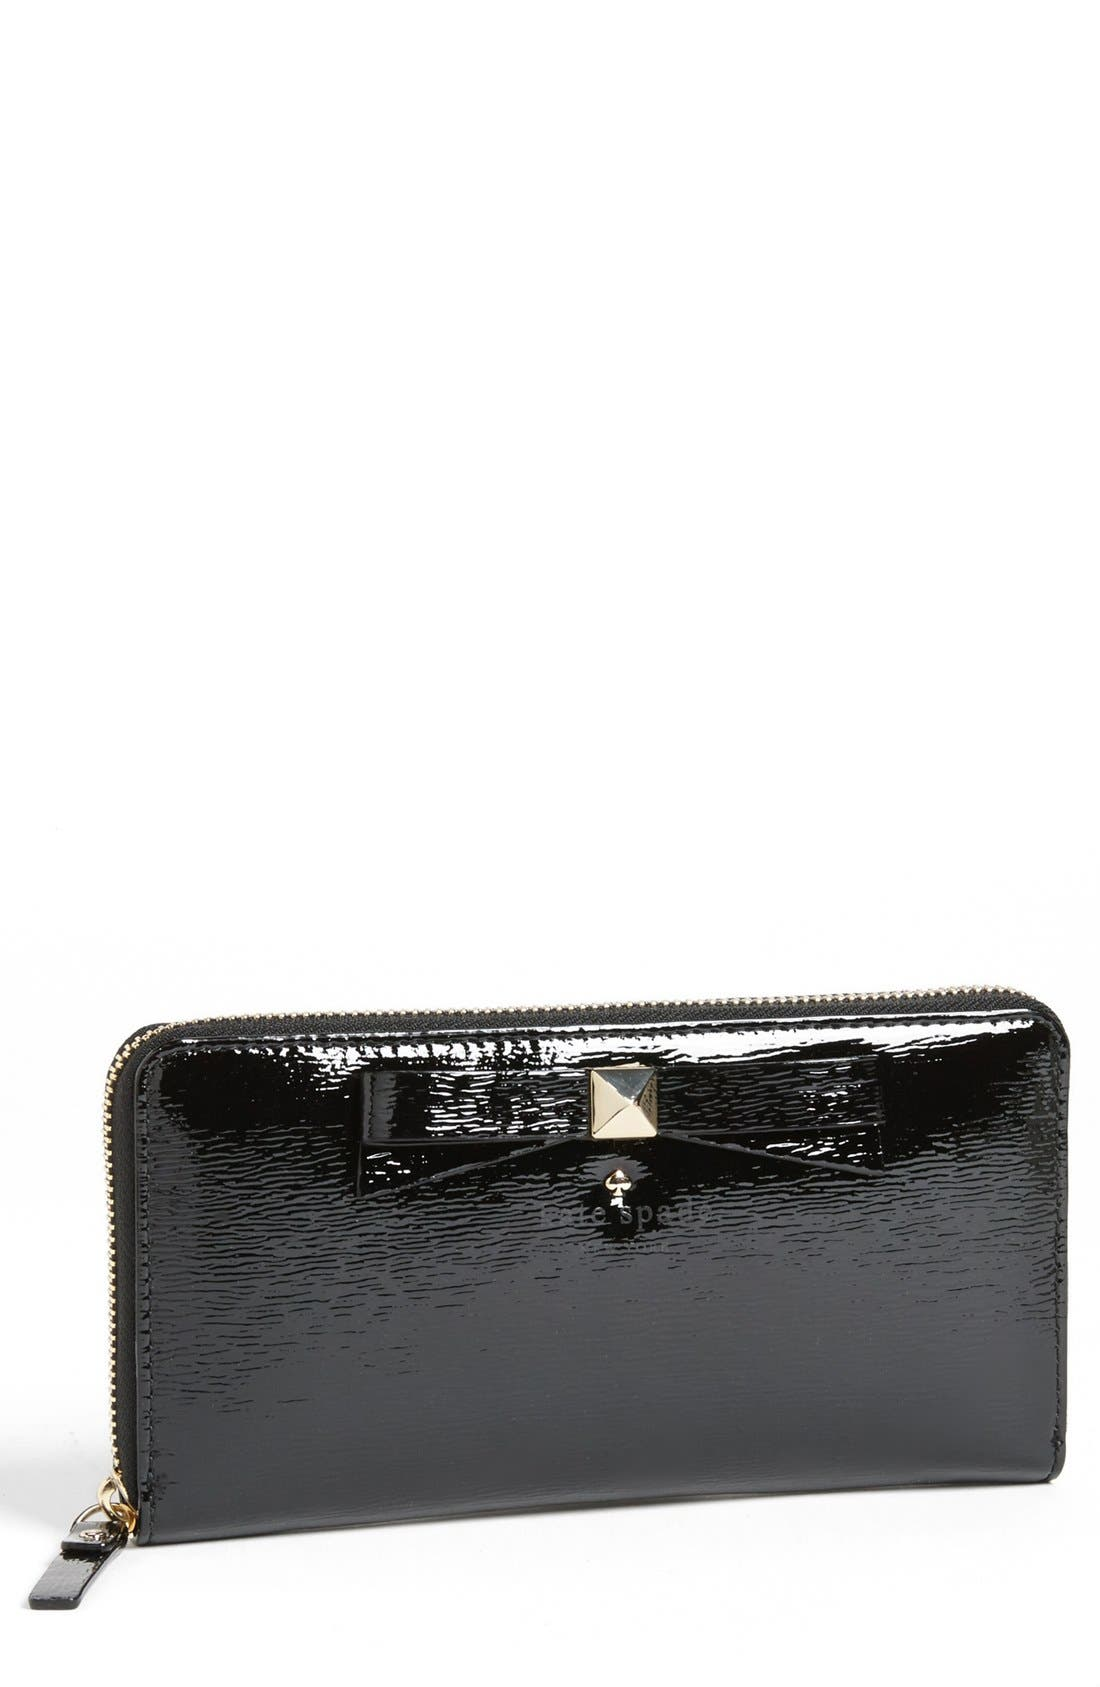 Main Image - kate spade new york 'beacon court lacey - large' leather wallet